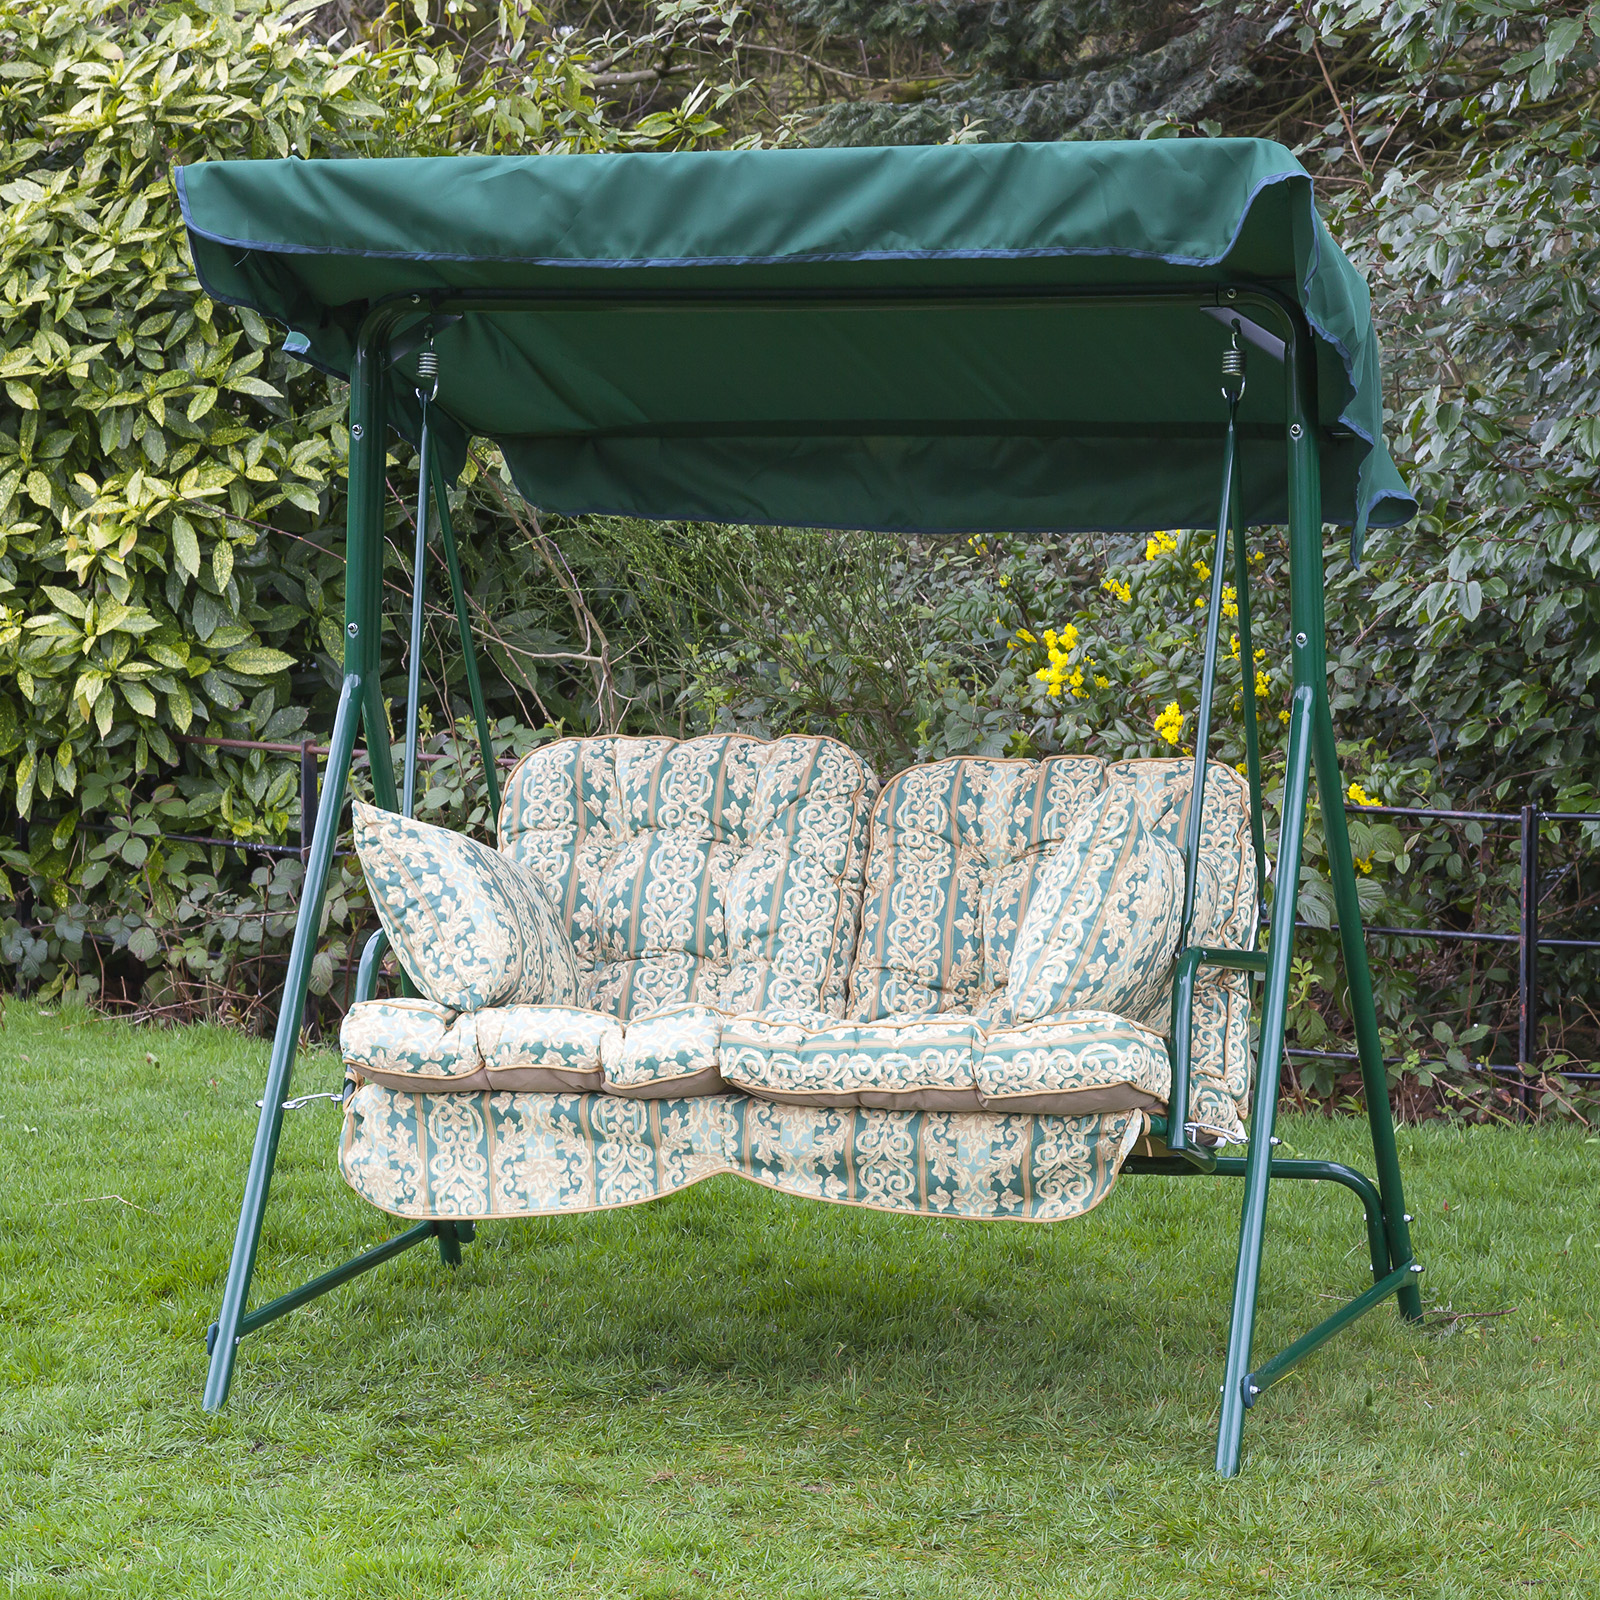 outdoor swing chair covers cabelas camping chairs alfresia luxury garden seat cushions 2 seater ebay